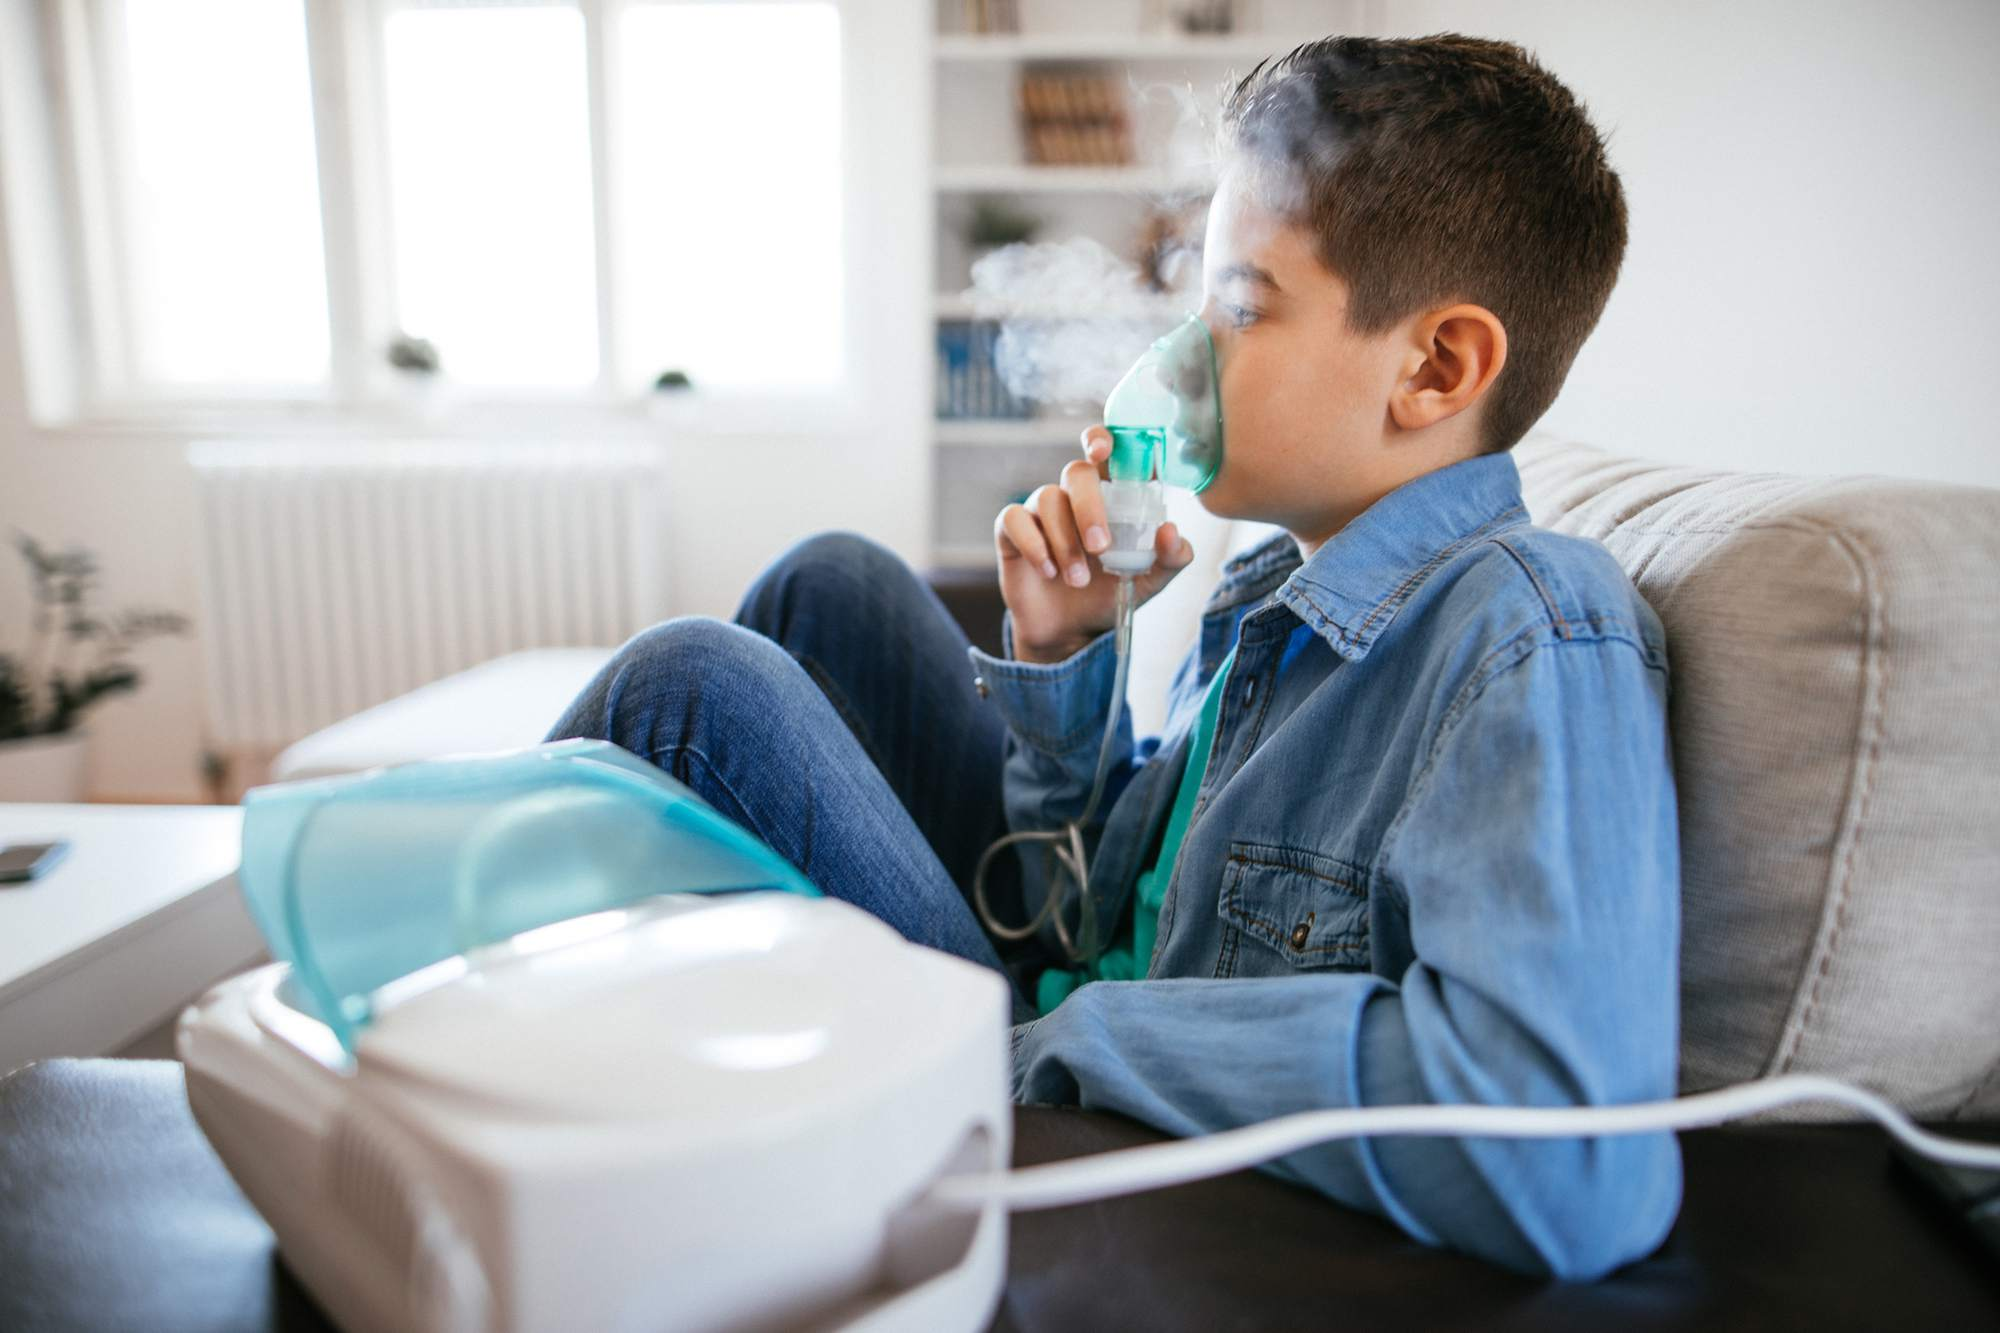 Nebulizer Market Rising Size, Huge Business Growth Opportunities with COVID-19 Impact Analysis By 2031